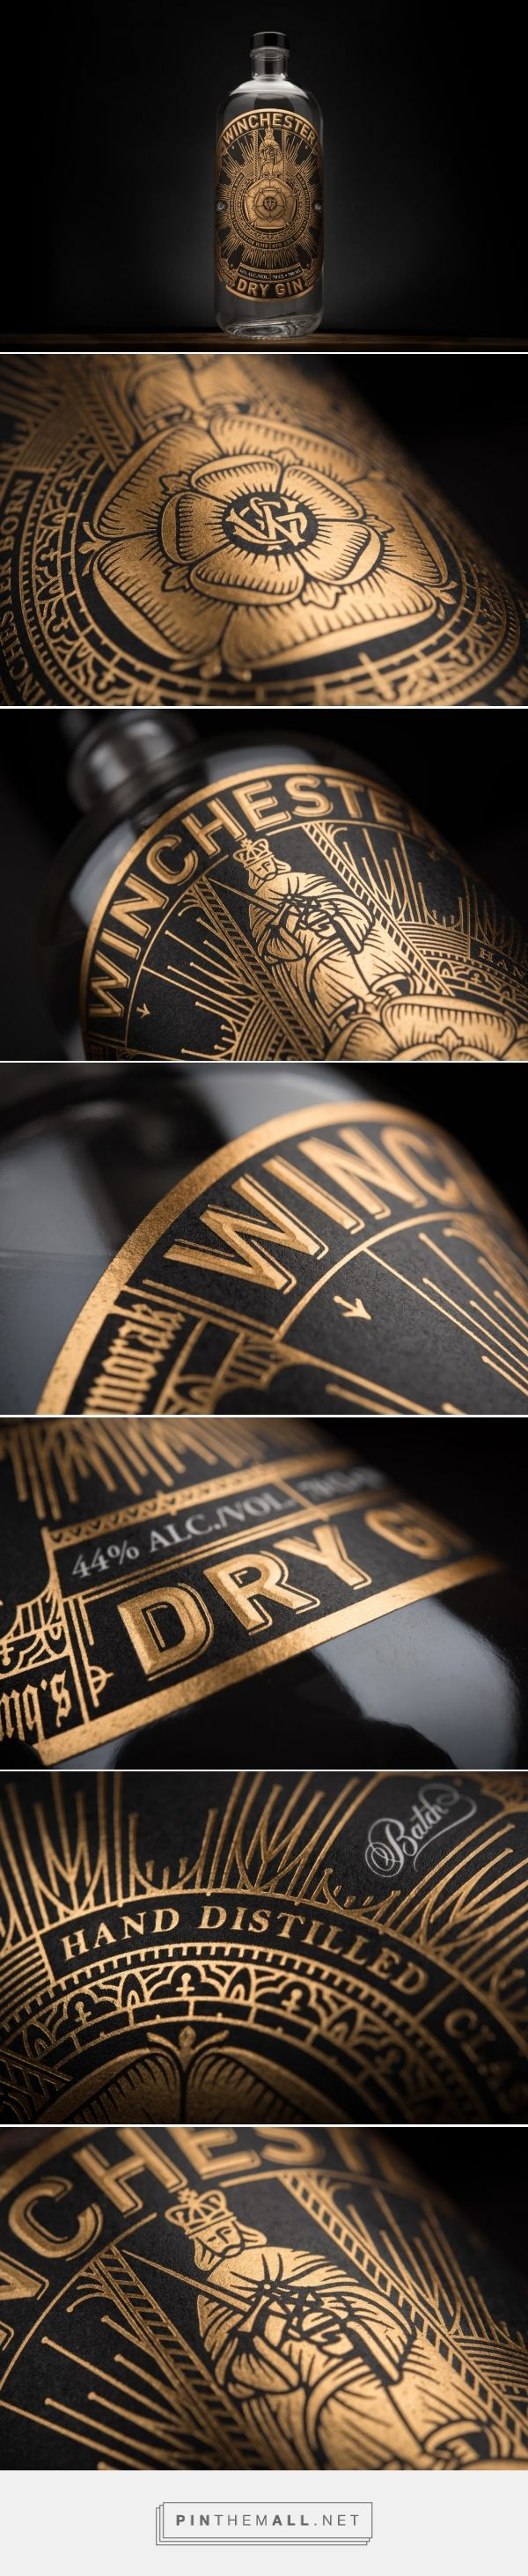 Winchester Gin packaging design by Sant Harwicke - http://www.packagingoftheworld.com/2017/07/winchester-gin.html - created via https://pinthemall.net